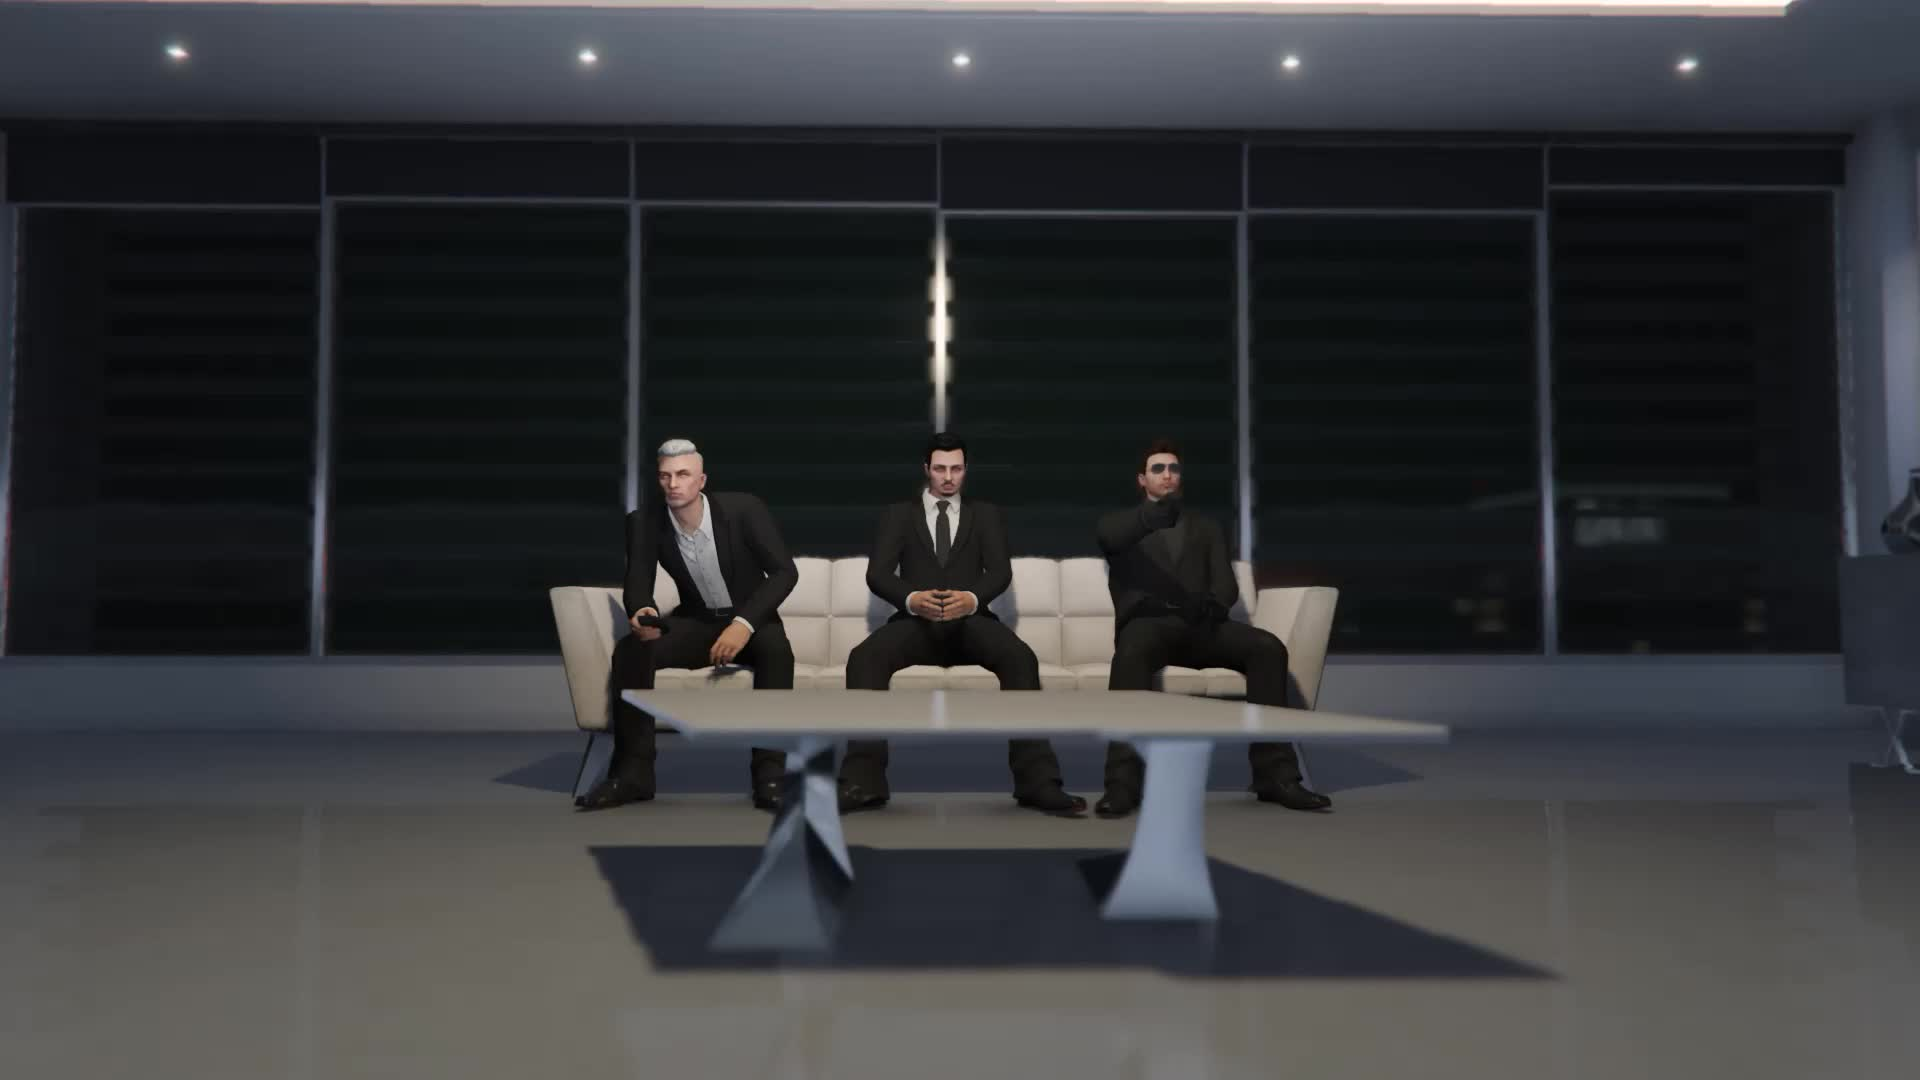 #ceo #gtav #ceo contest #CEO, GTAV, Gaming, Lion Montages, PC, ROCKSTAR_EDITOR, BOSS - GTA Online Cinematic GIFs